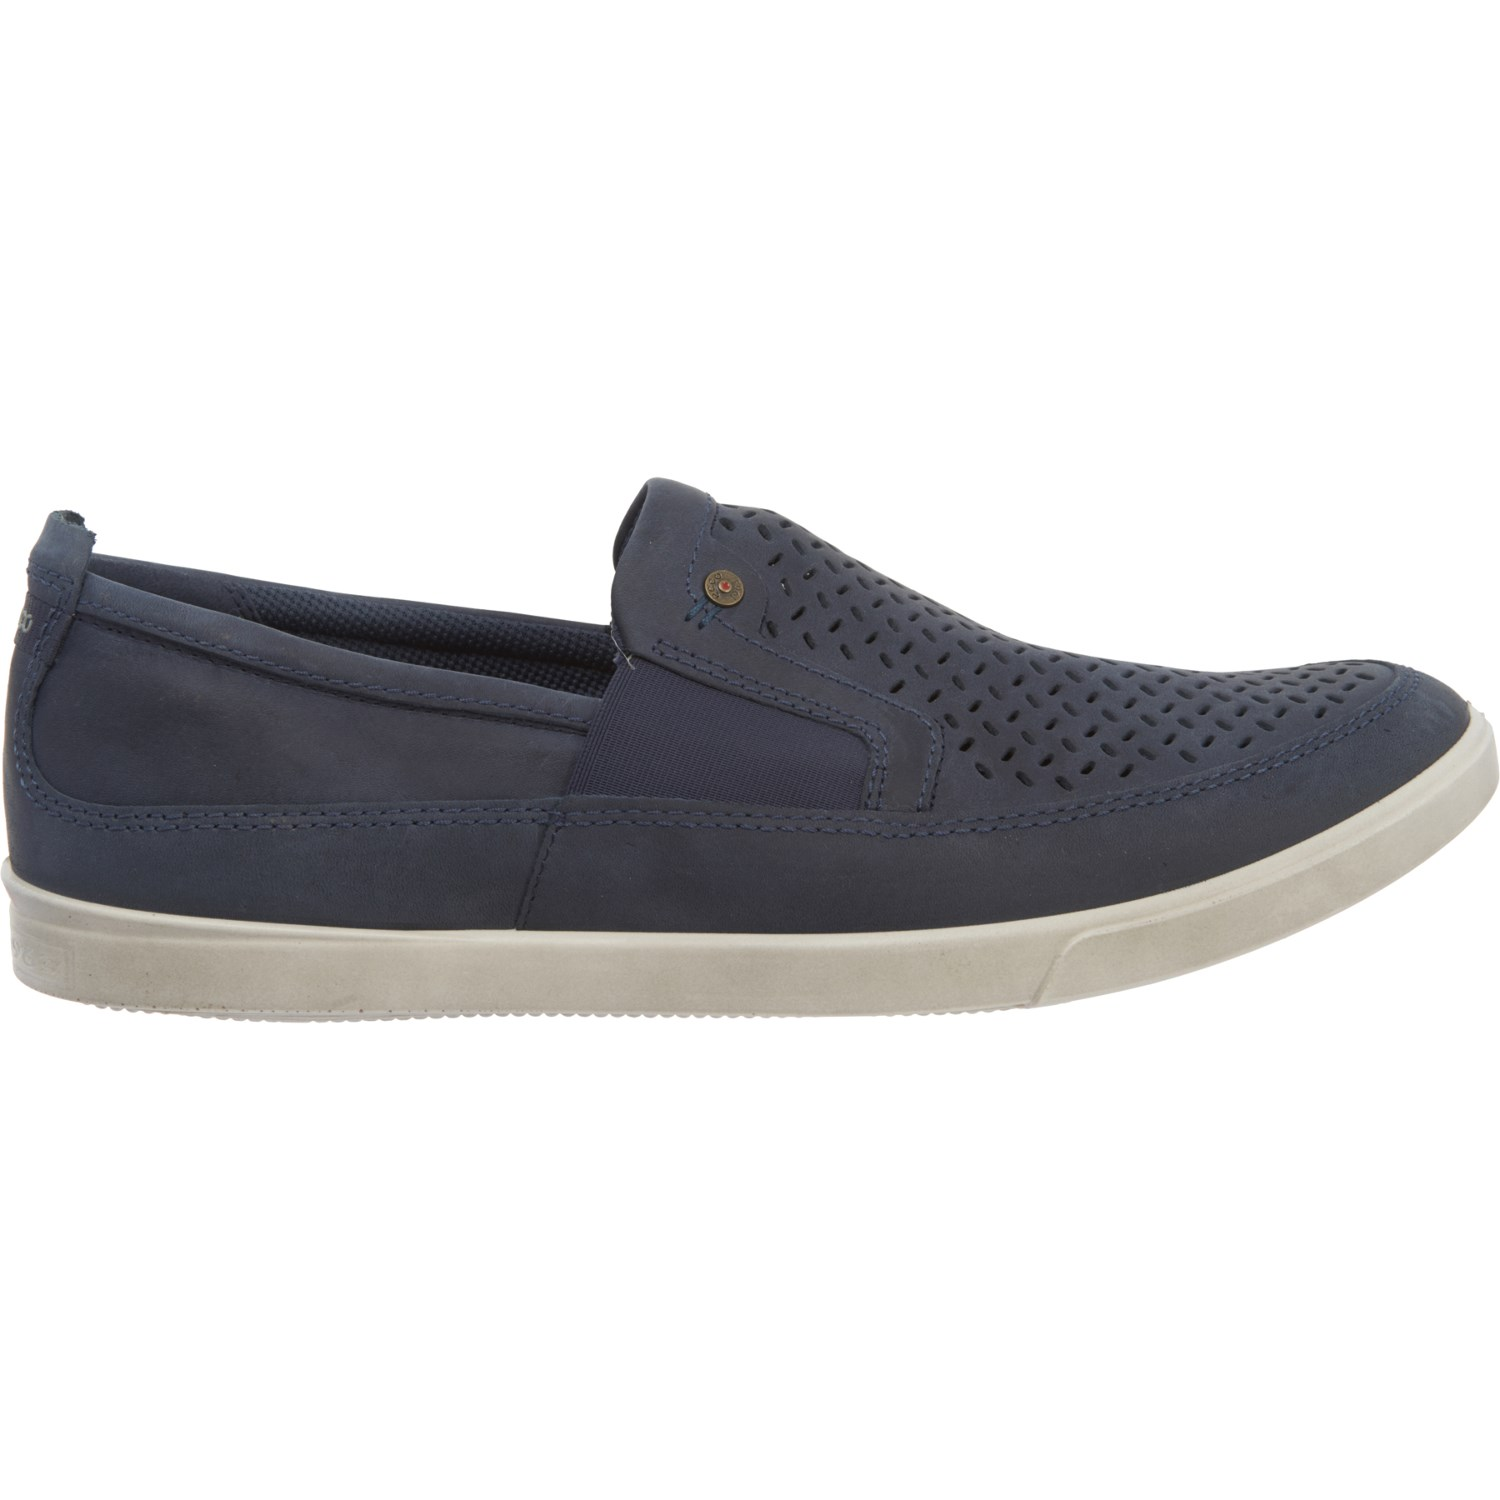 96032197 ECCO Made in Portugal Collin Casual Shoes - Leather, Slip-Ons (For Men)